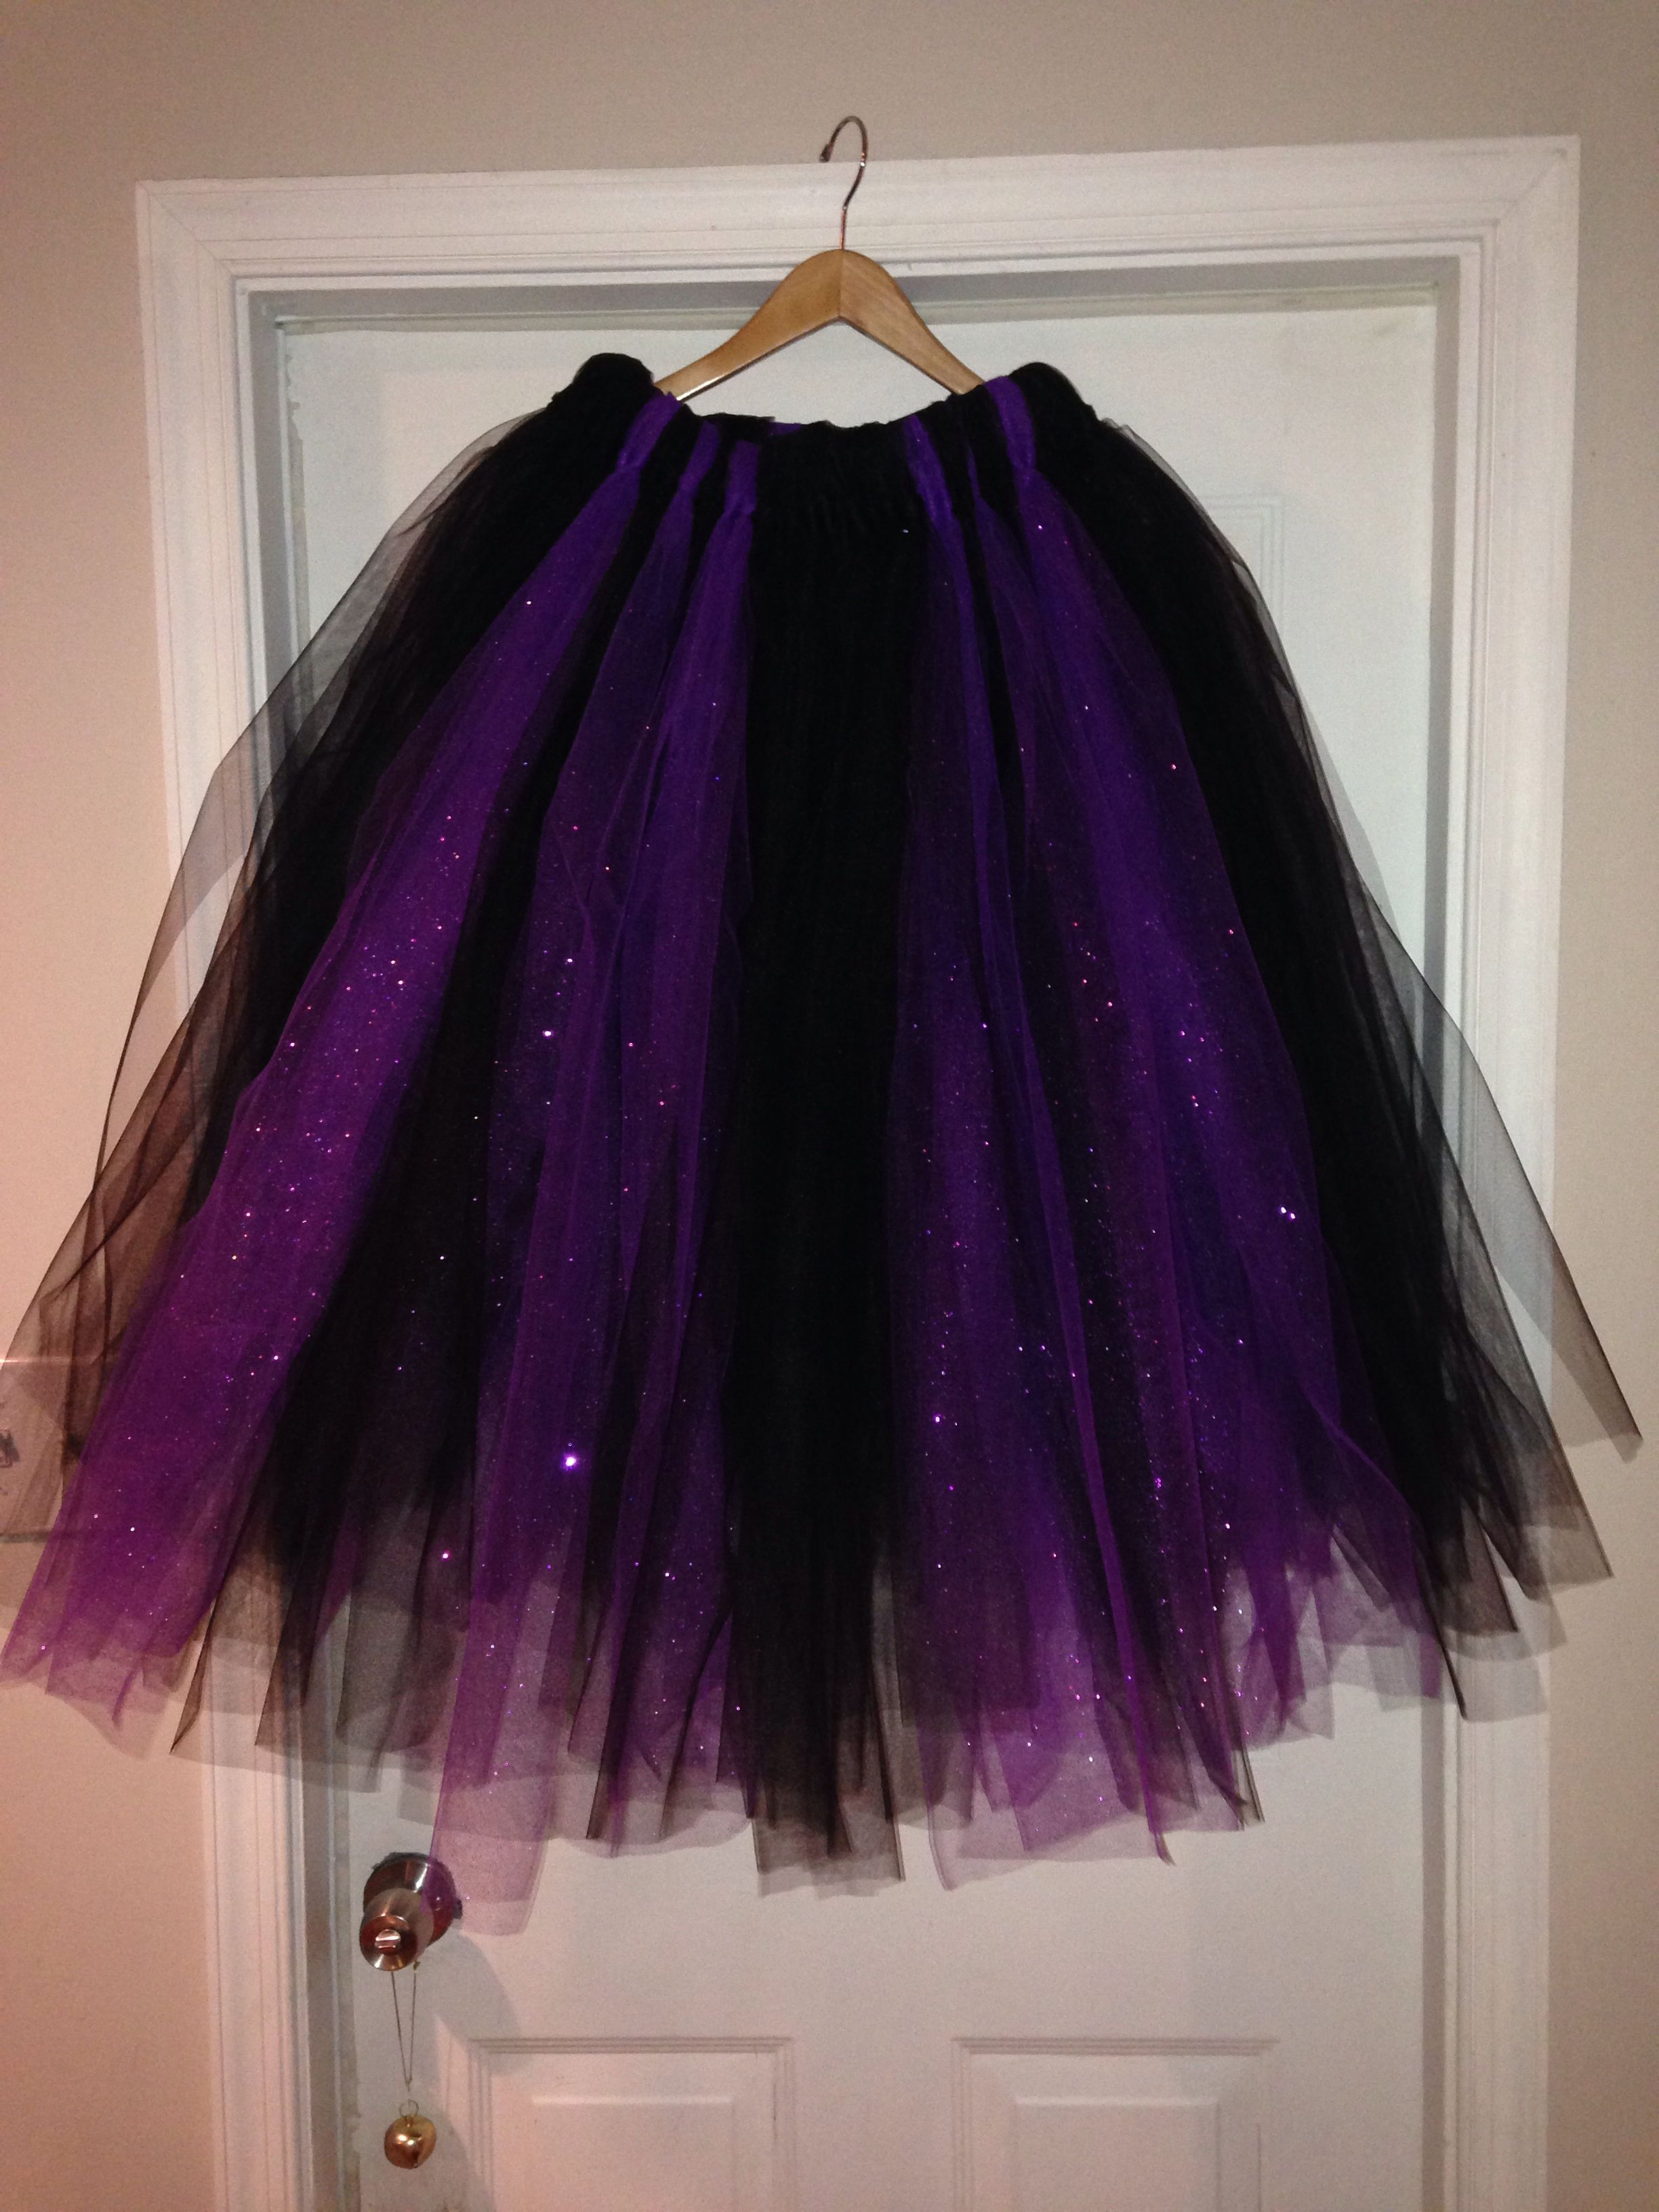 83df11a1a0 Virtually no-sew adult black and purple tulle skirt for my witch costume  this year! #nosewtulleskirt